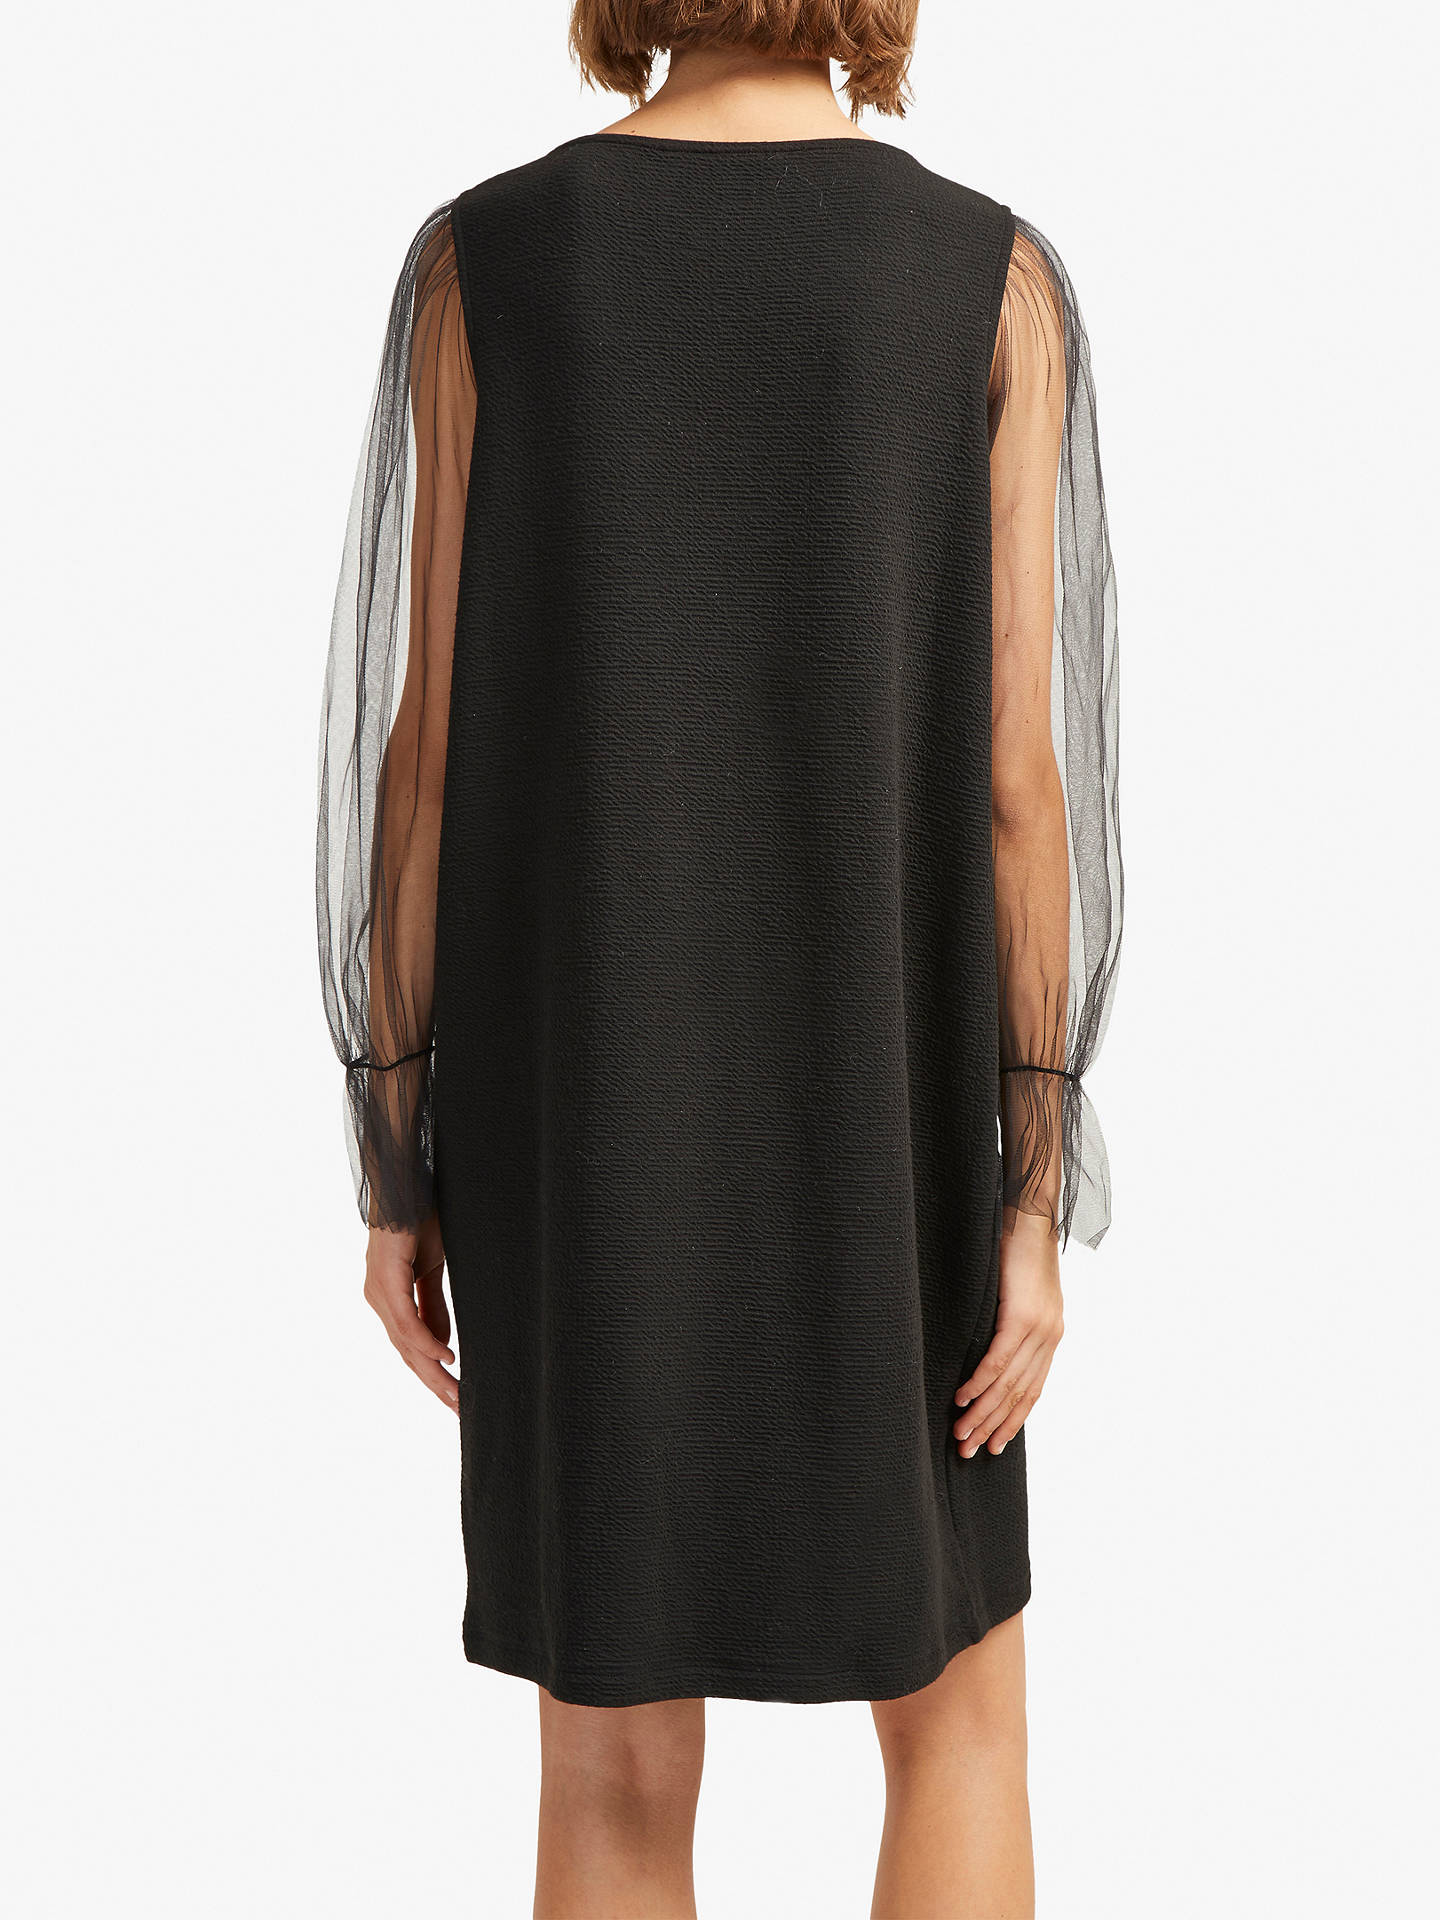 80a9749f6a7 ... Buy French Connection Sheer Jersey Shift Dress, Black, 6 Online at  johnlewis.com ...